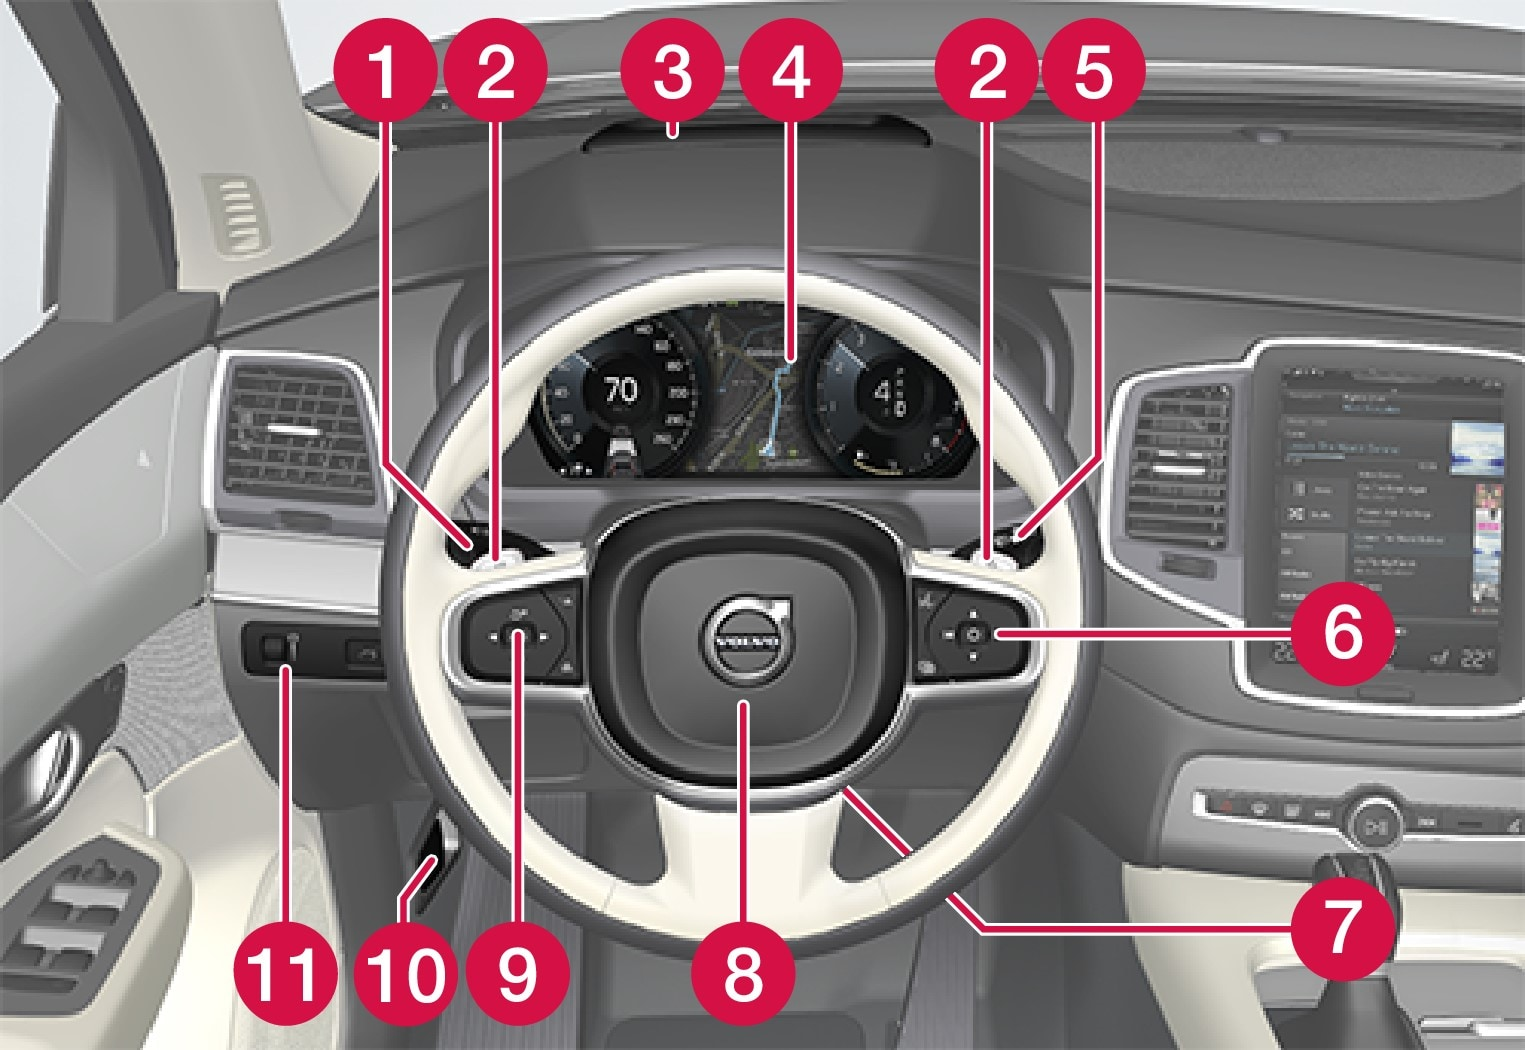 P5-1507 Instruments and controls 1 LHD